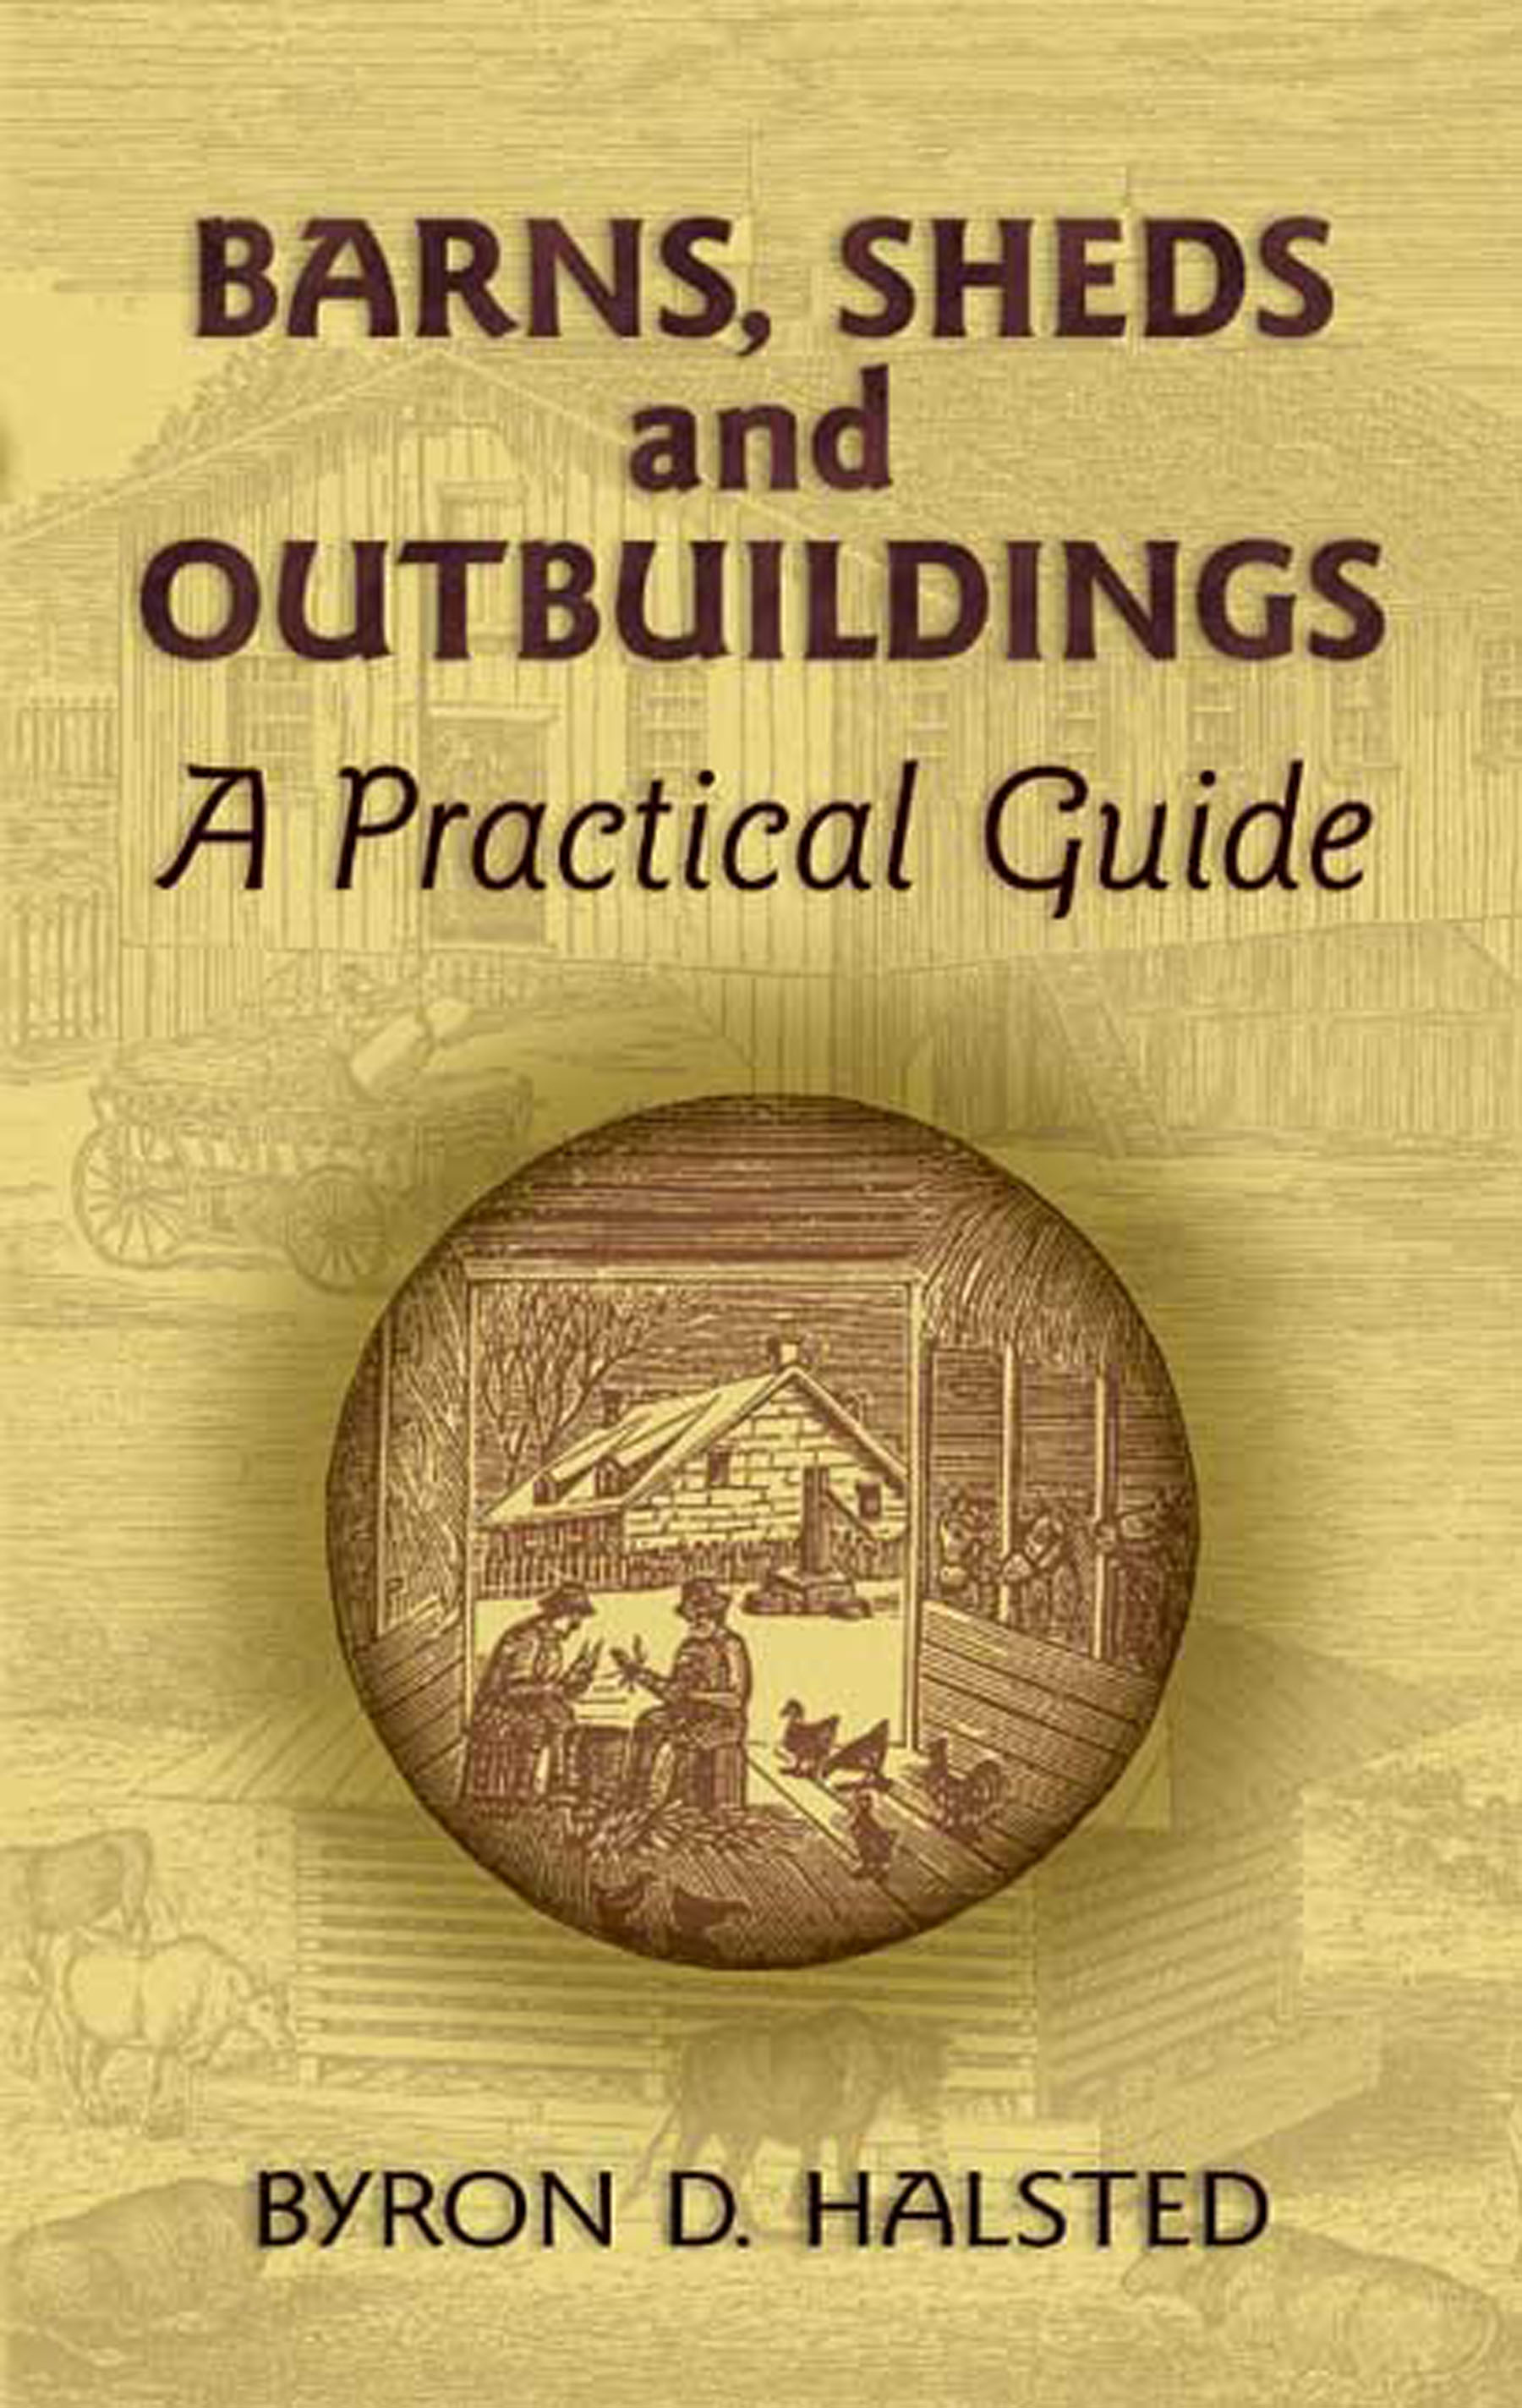 Barns, sheds and outbuildings a practical guide